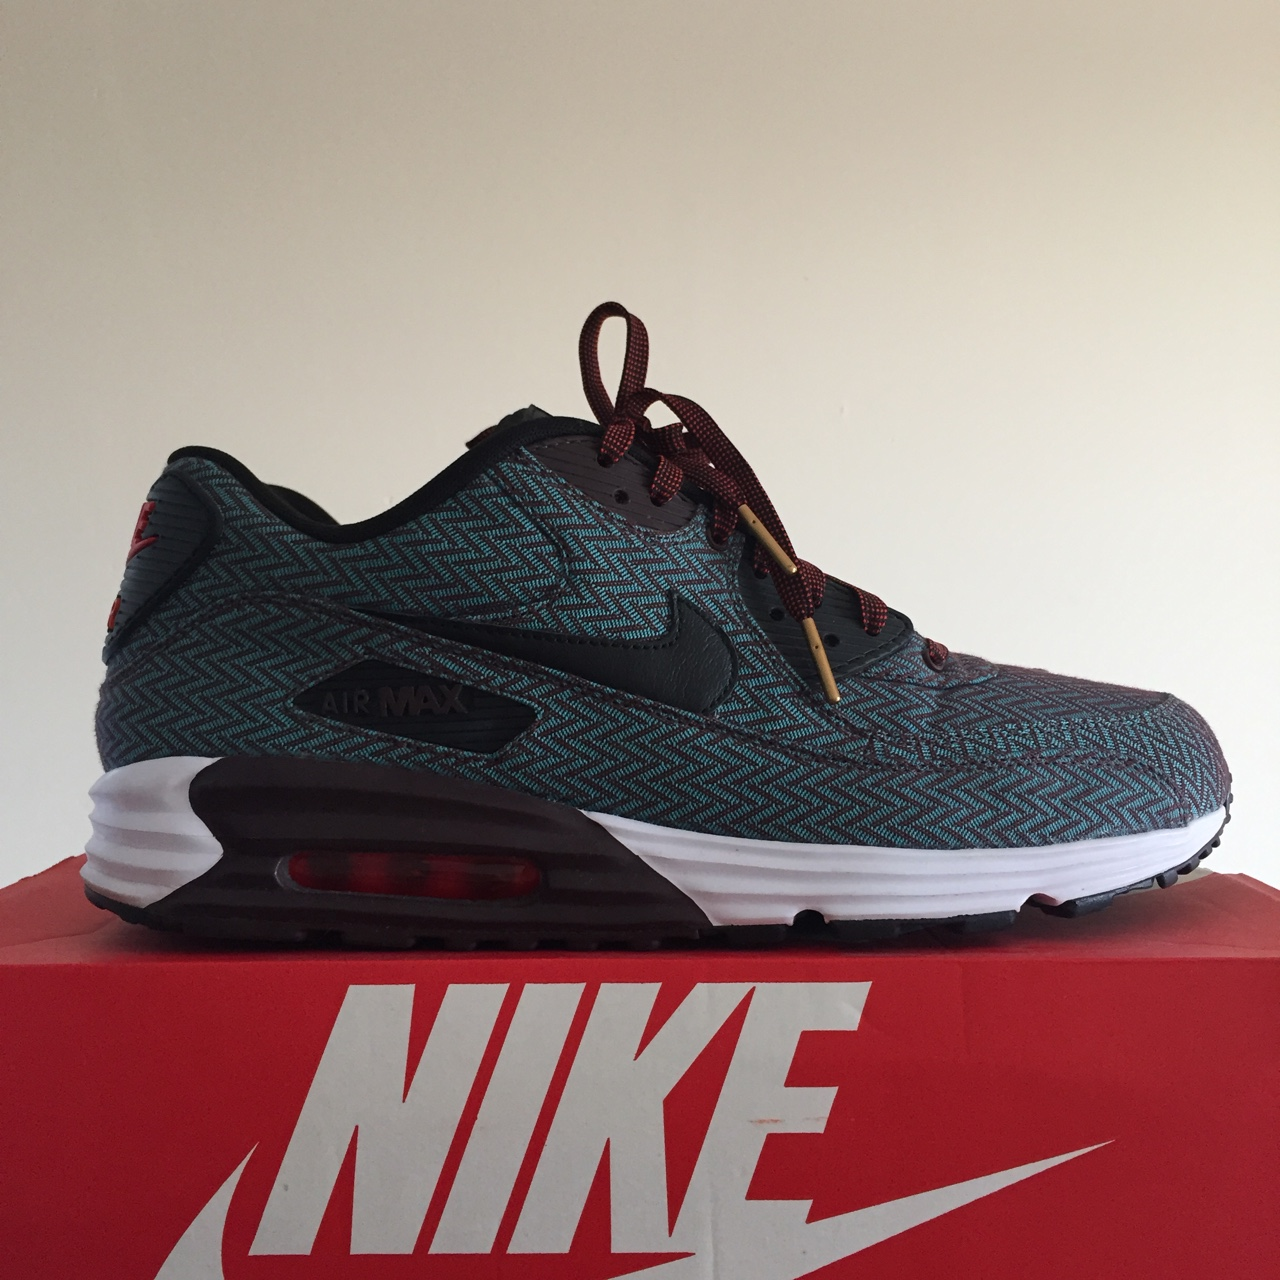 new styles 083cb c8f9e Nike Air Max 90 Suit & Tie 2014 705068 600 I think... - Depop